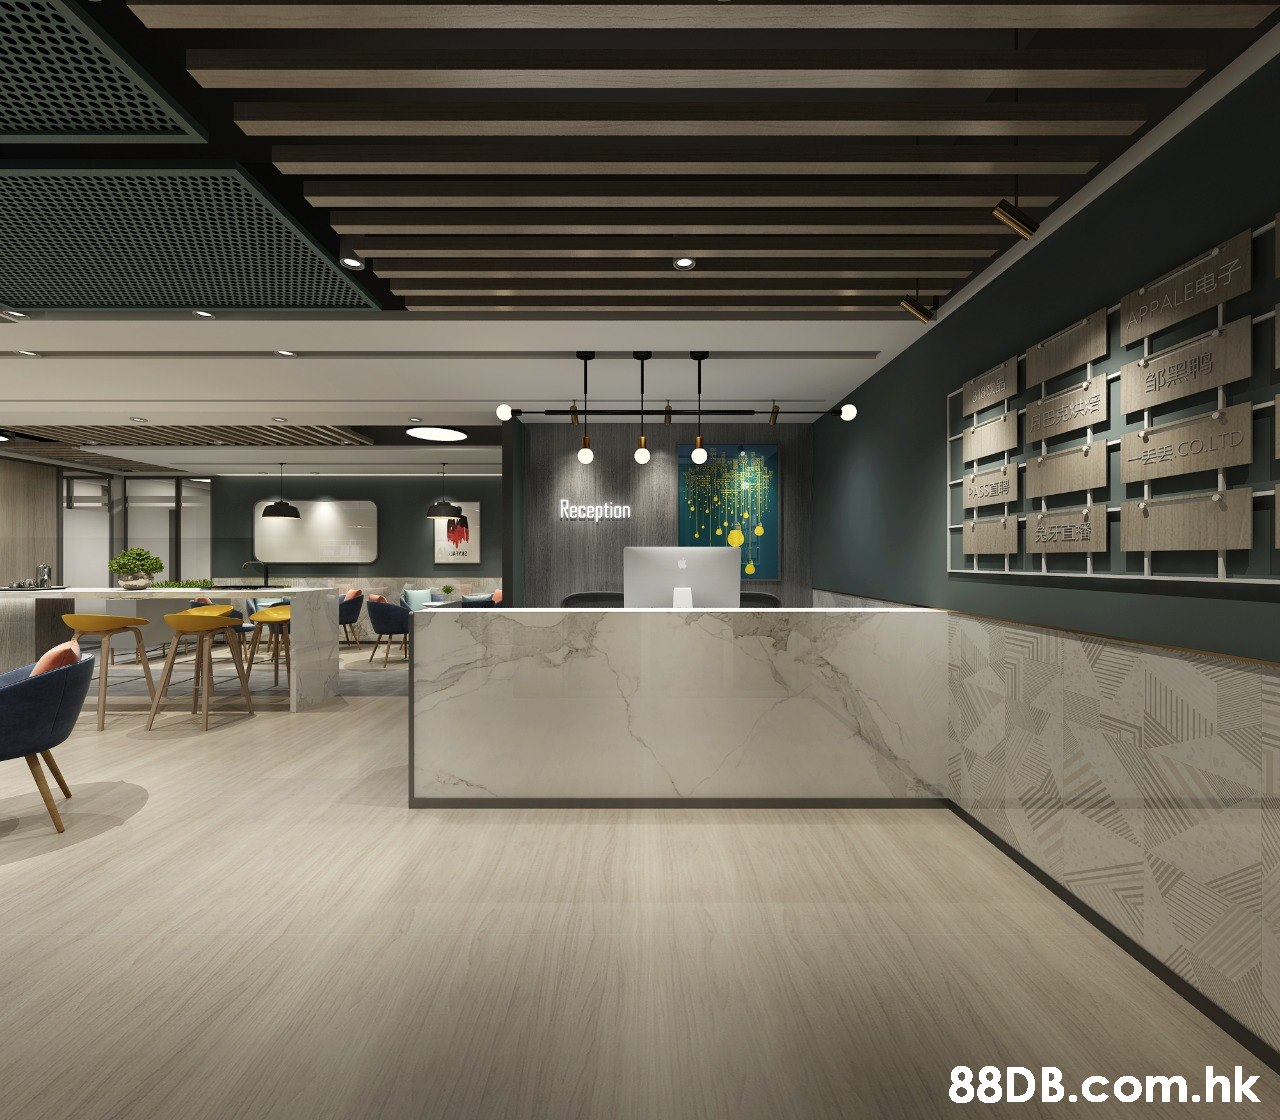 APPALEFE EE Reception - CO.LTD .hk  Lobby,Architecture,Building,Interior design,Ceiling